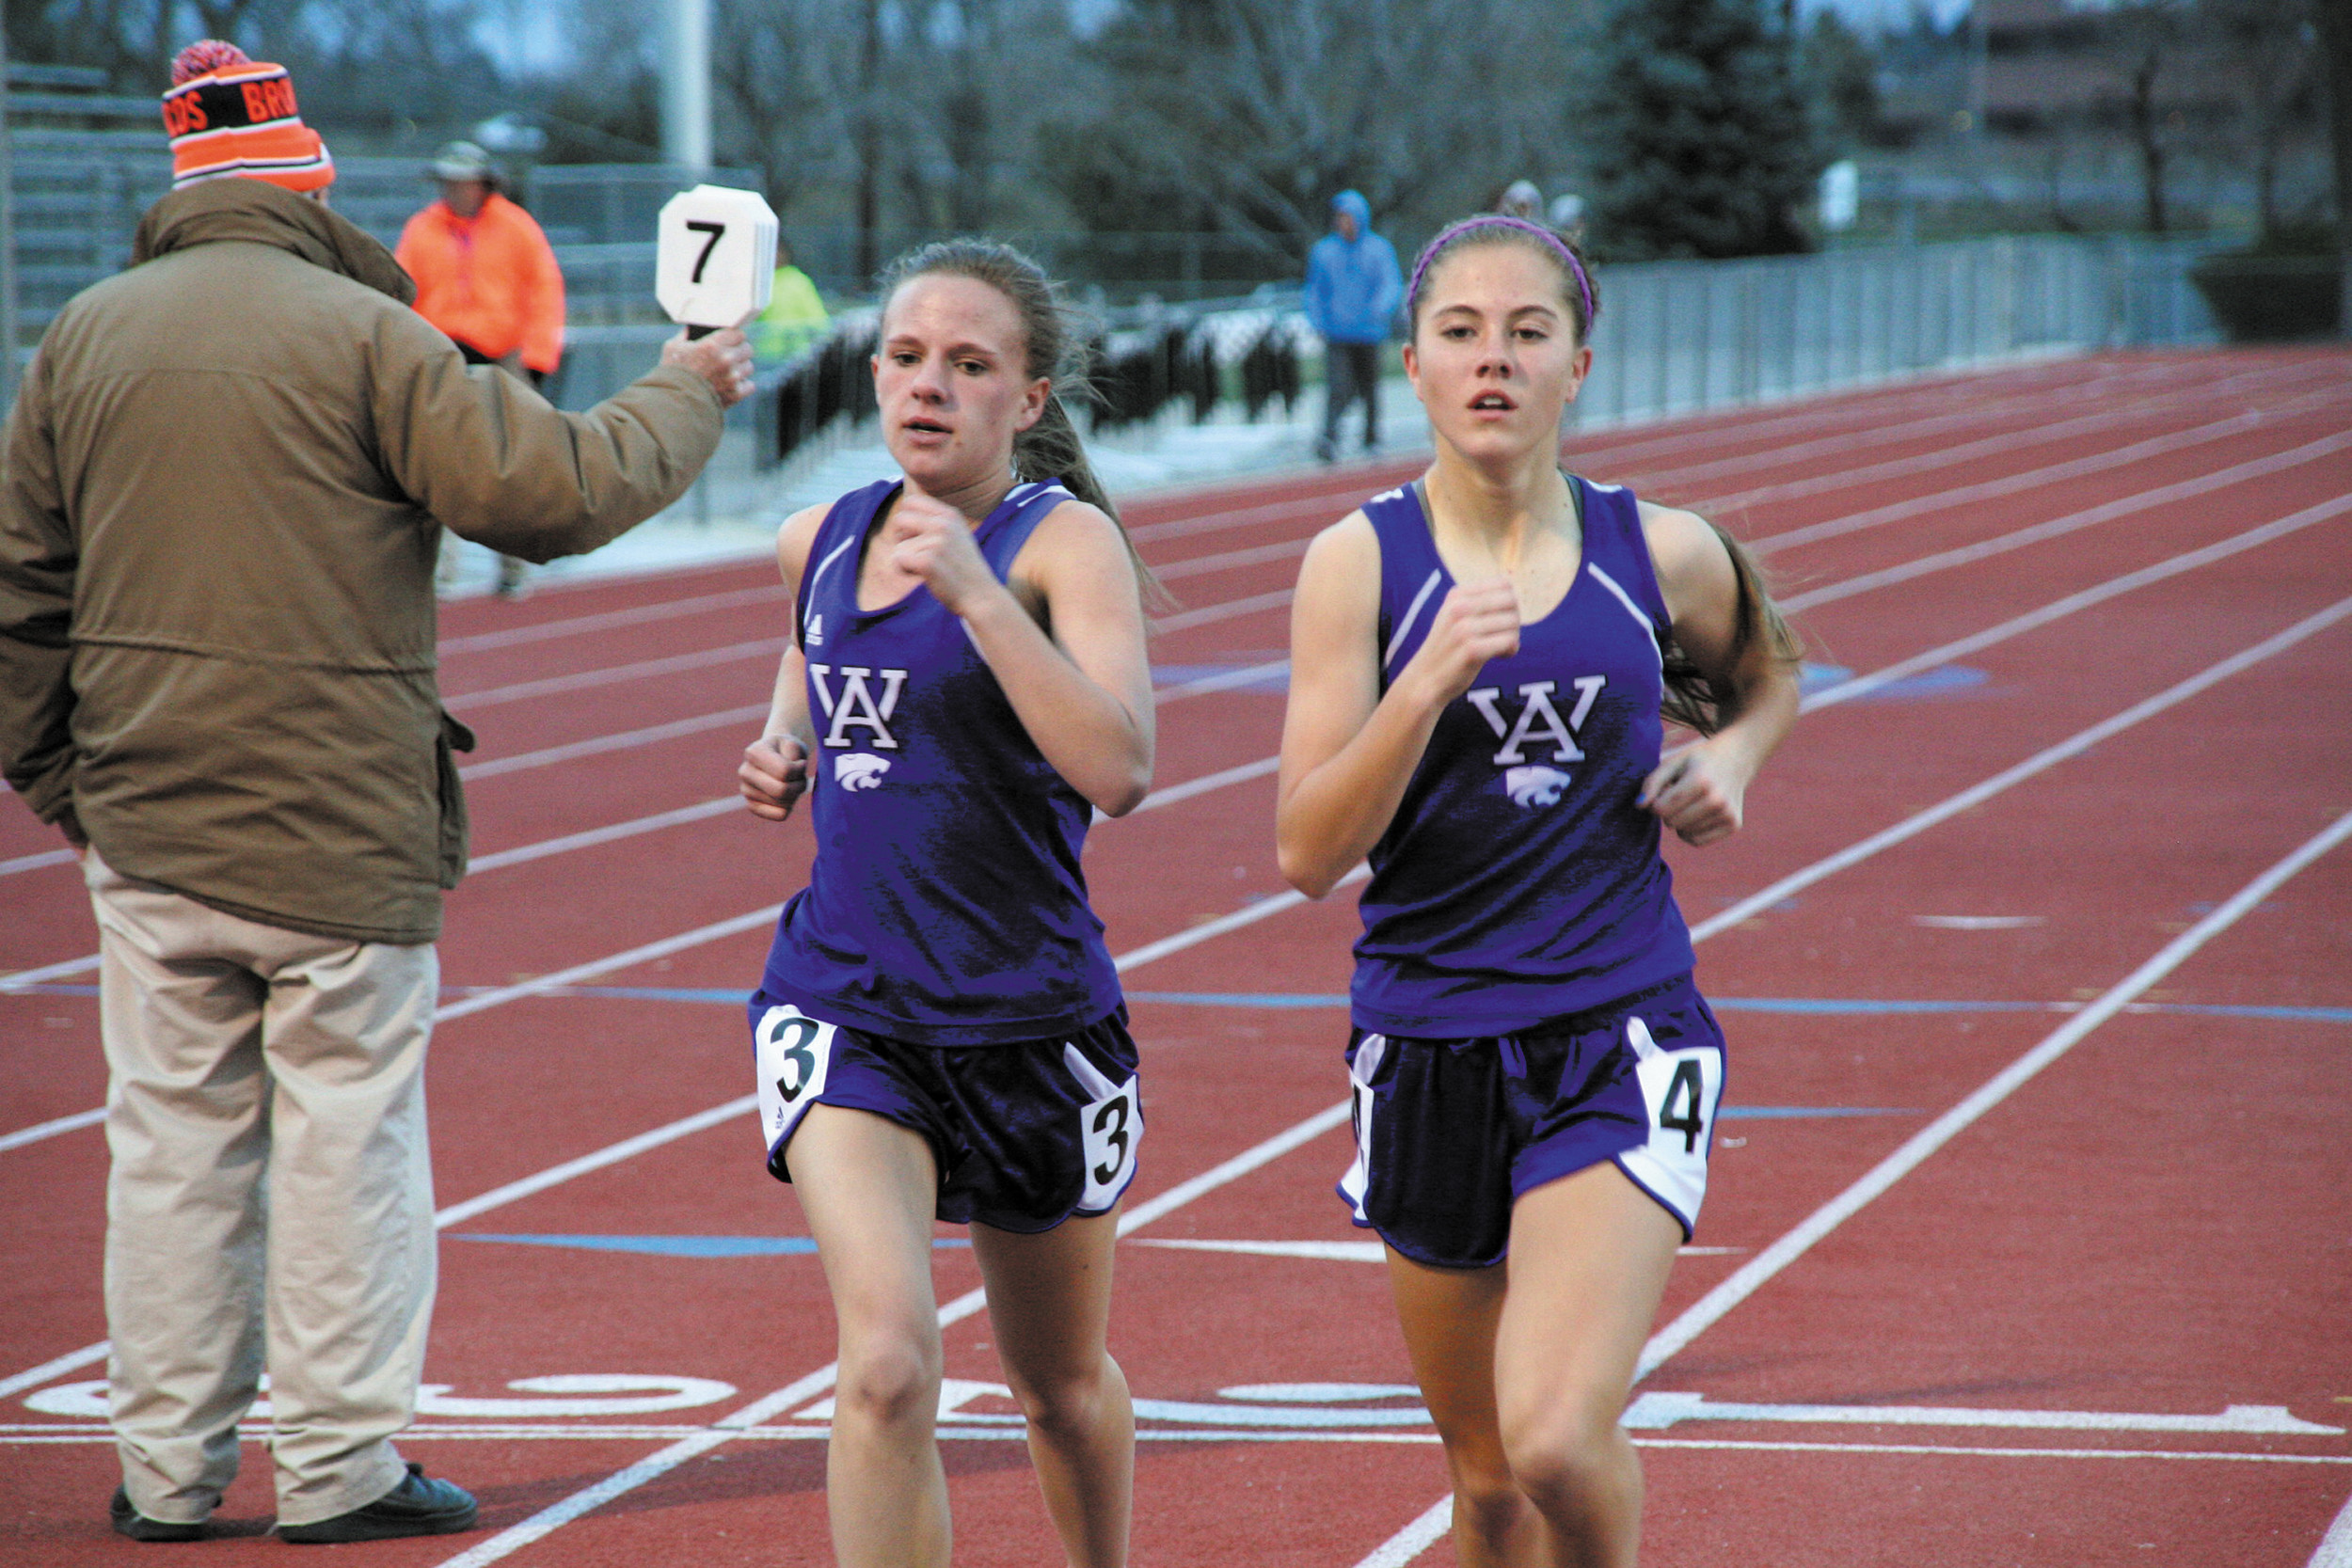 Arvada West's Erin Rawe-Thomas and Abby Kostelecky run side-by-side and stride for stride in the 3200 meter event Wednesday at Jeffco Stadium. Rawe-Thomas went on to win the race. Photo by Daniel Williams